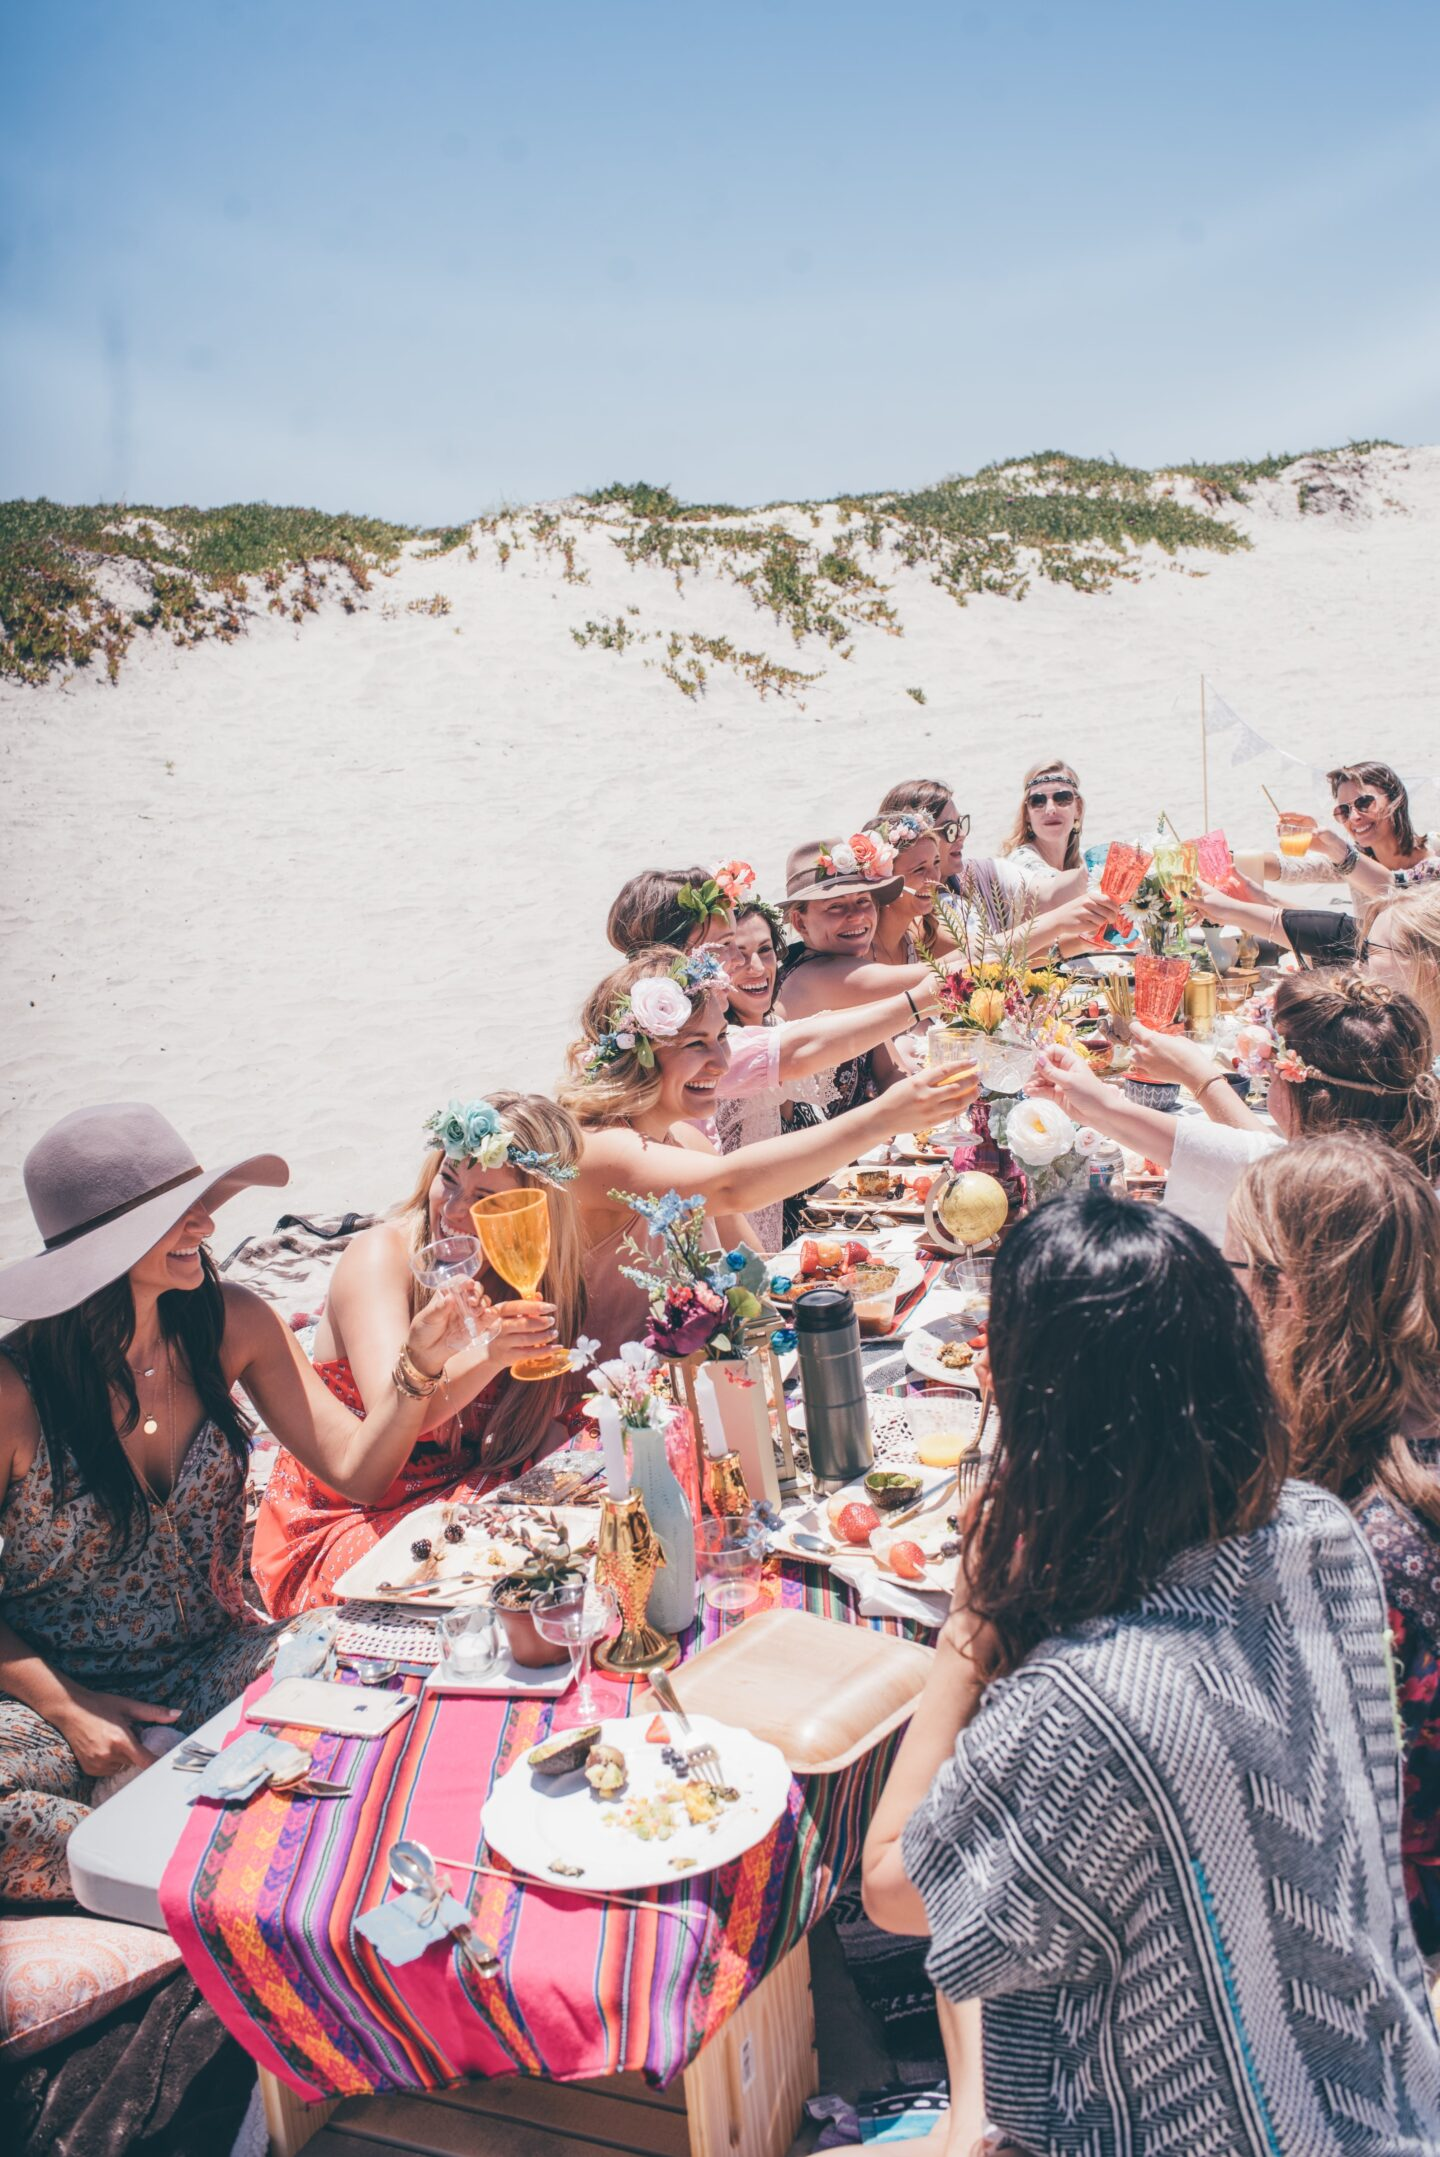 13 Insanely Fun Things To Do For Your 22nd Birthday